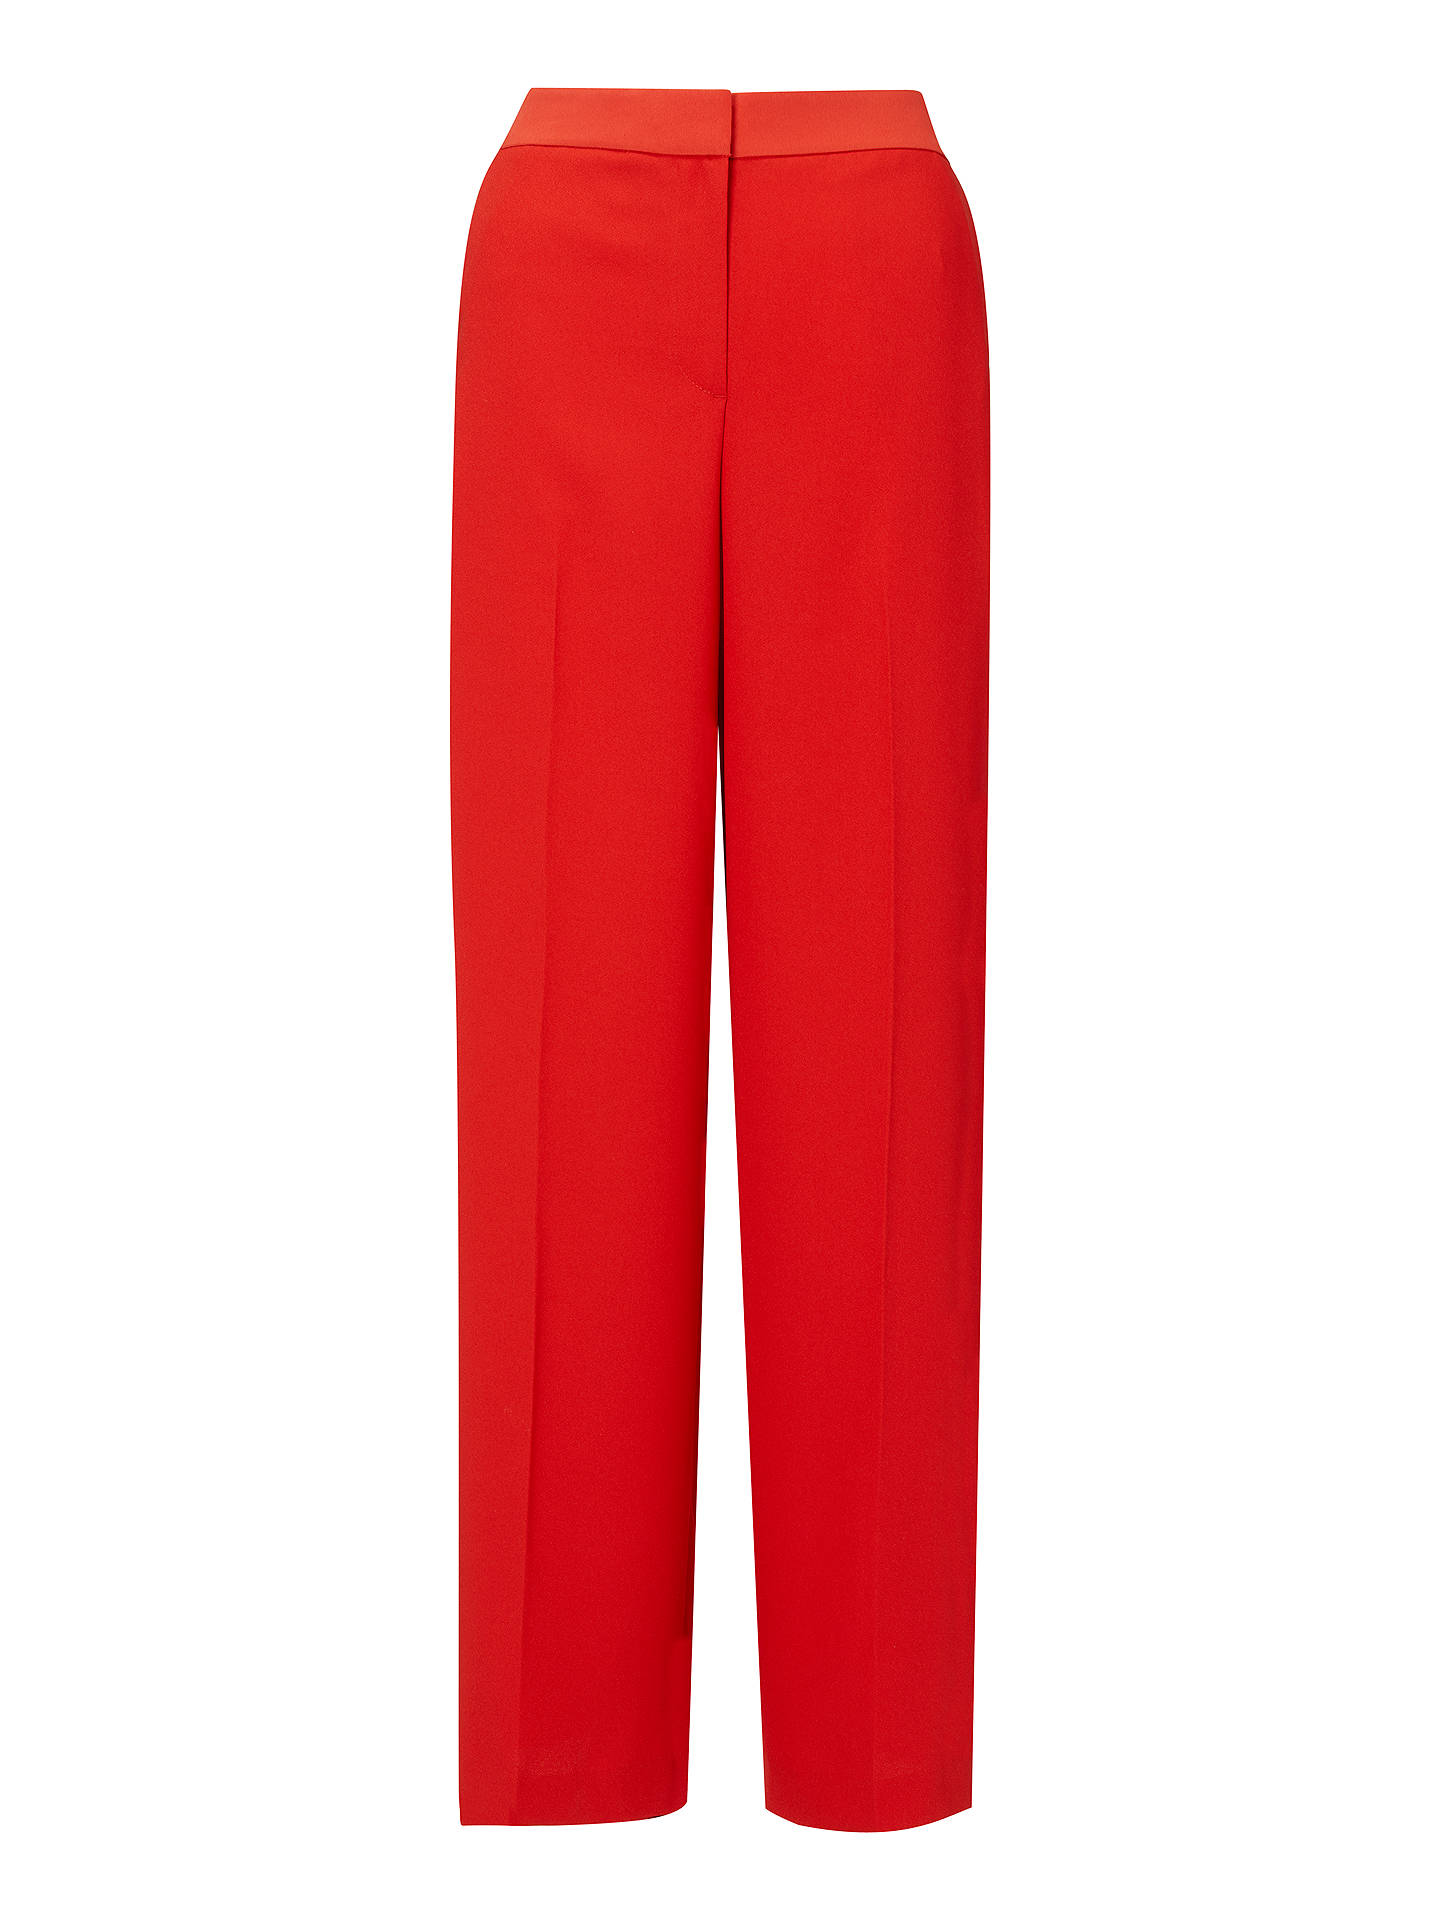 BuyBoden  Marlin Wide Leg Trousers, Post Box Red, 8 Online at johnlewis.com